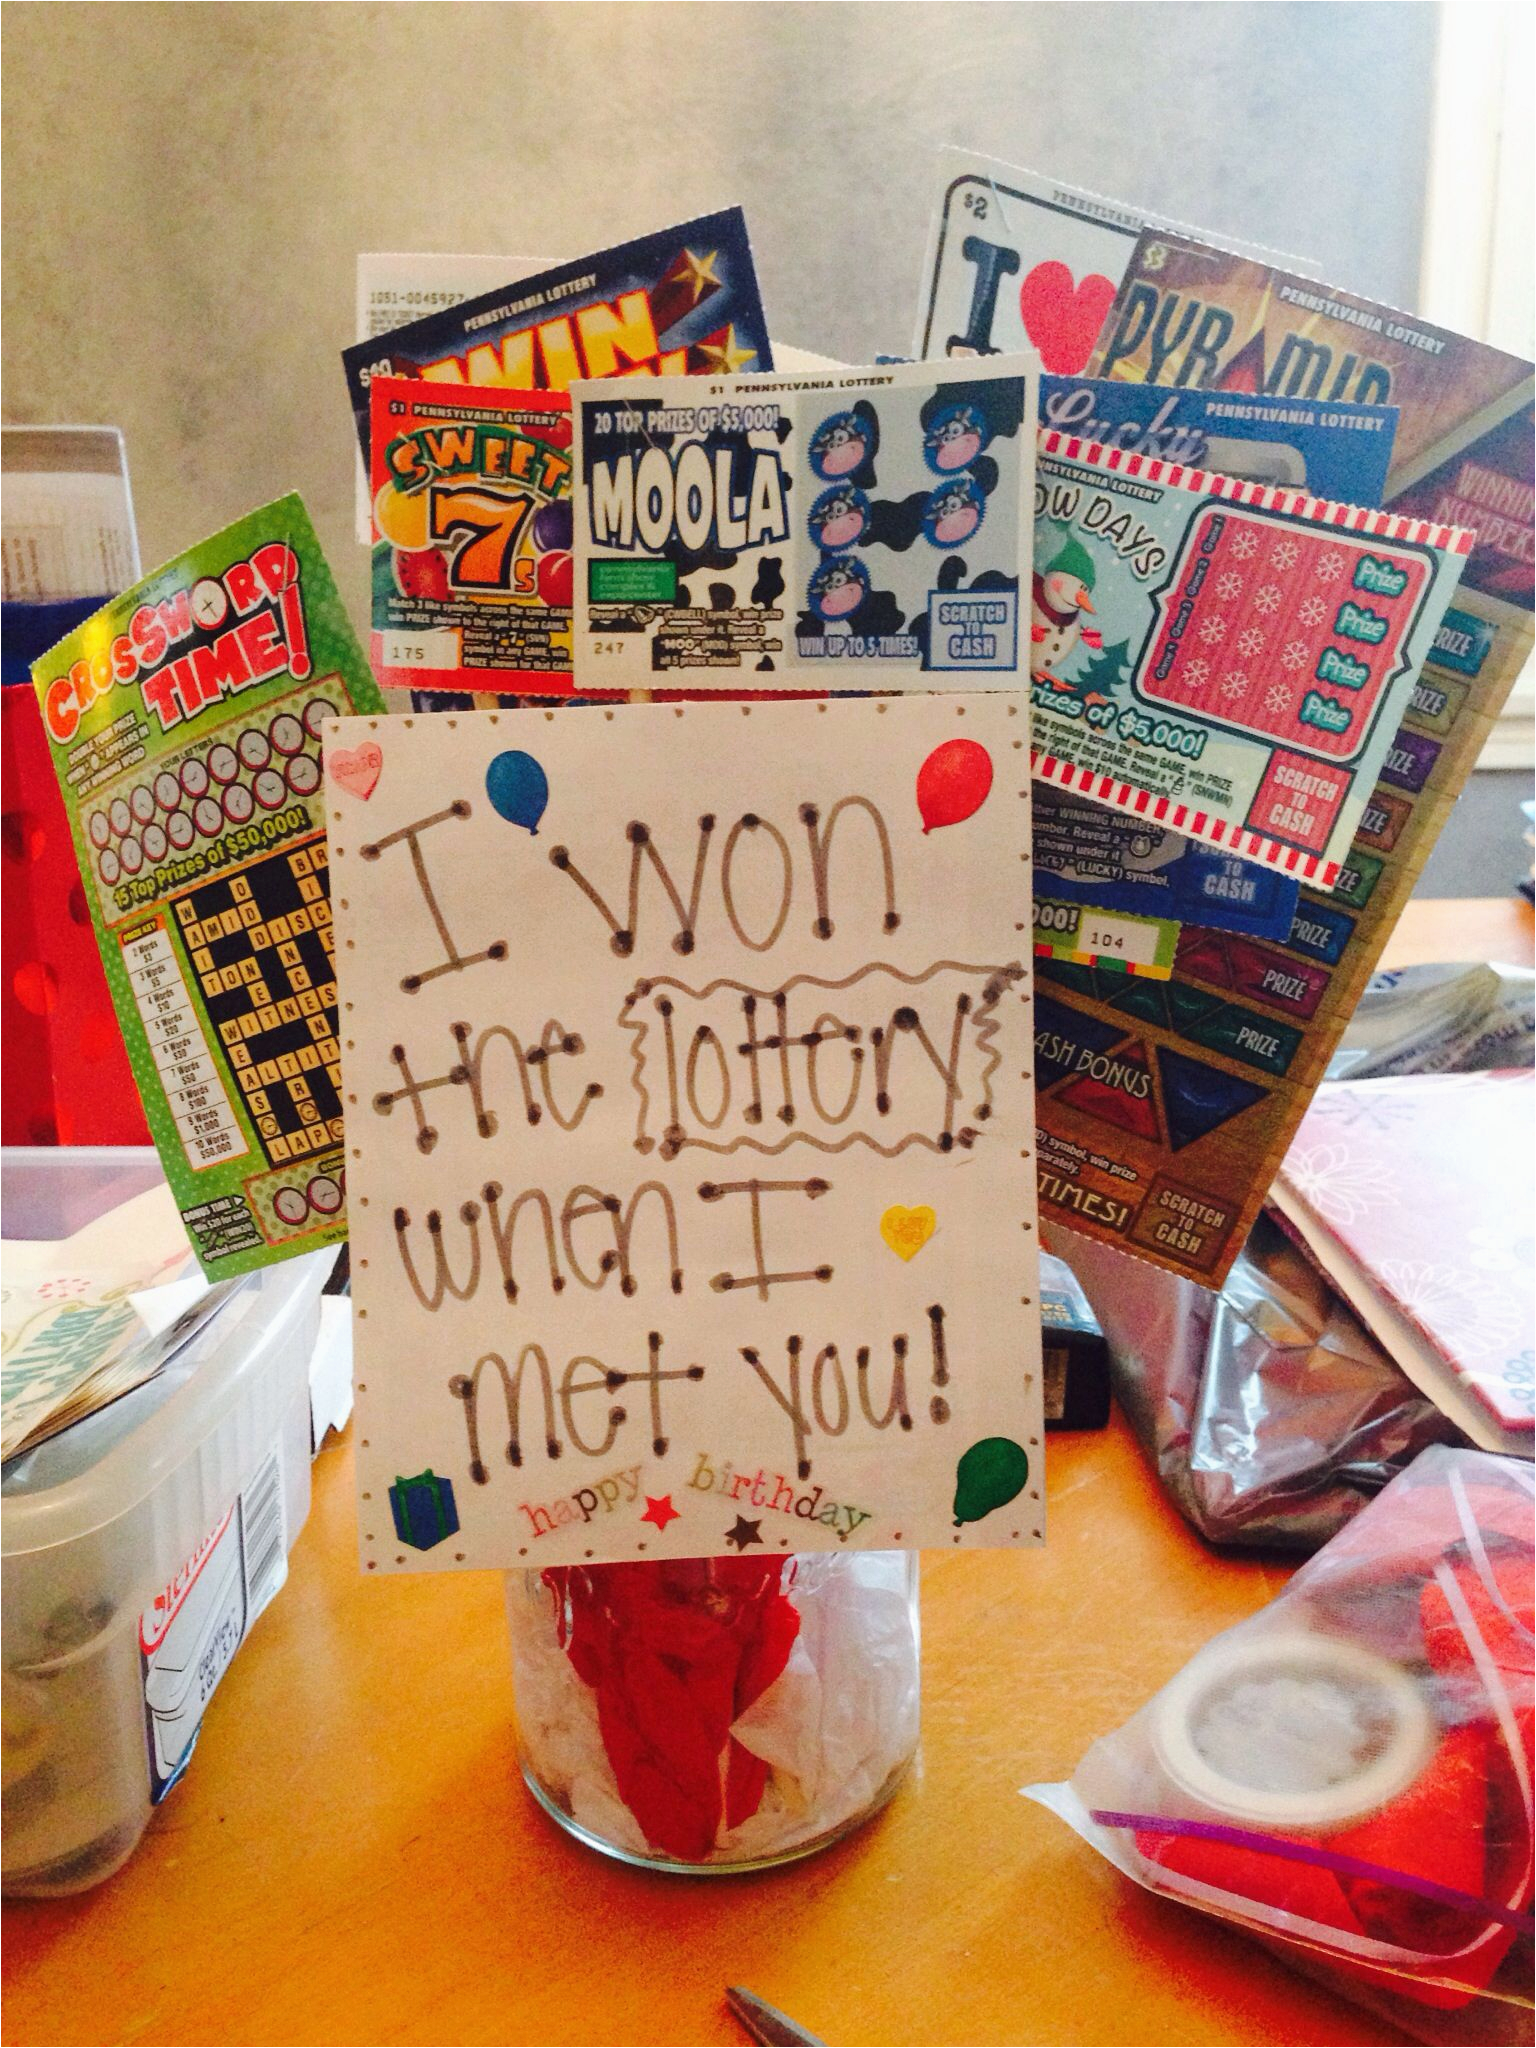 List Of Best Birthday Gifts for Husband Lottery Tree Quot I Won the Lottery when I Met You